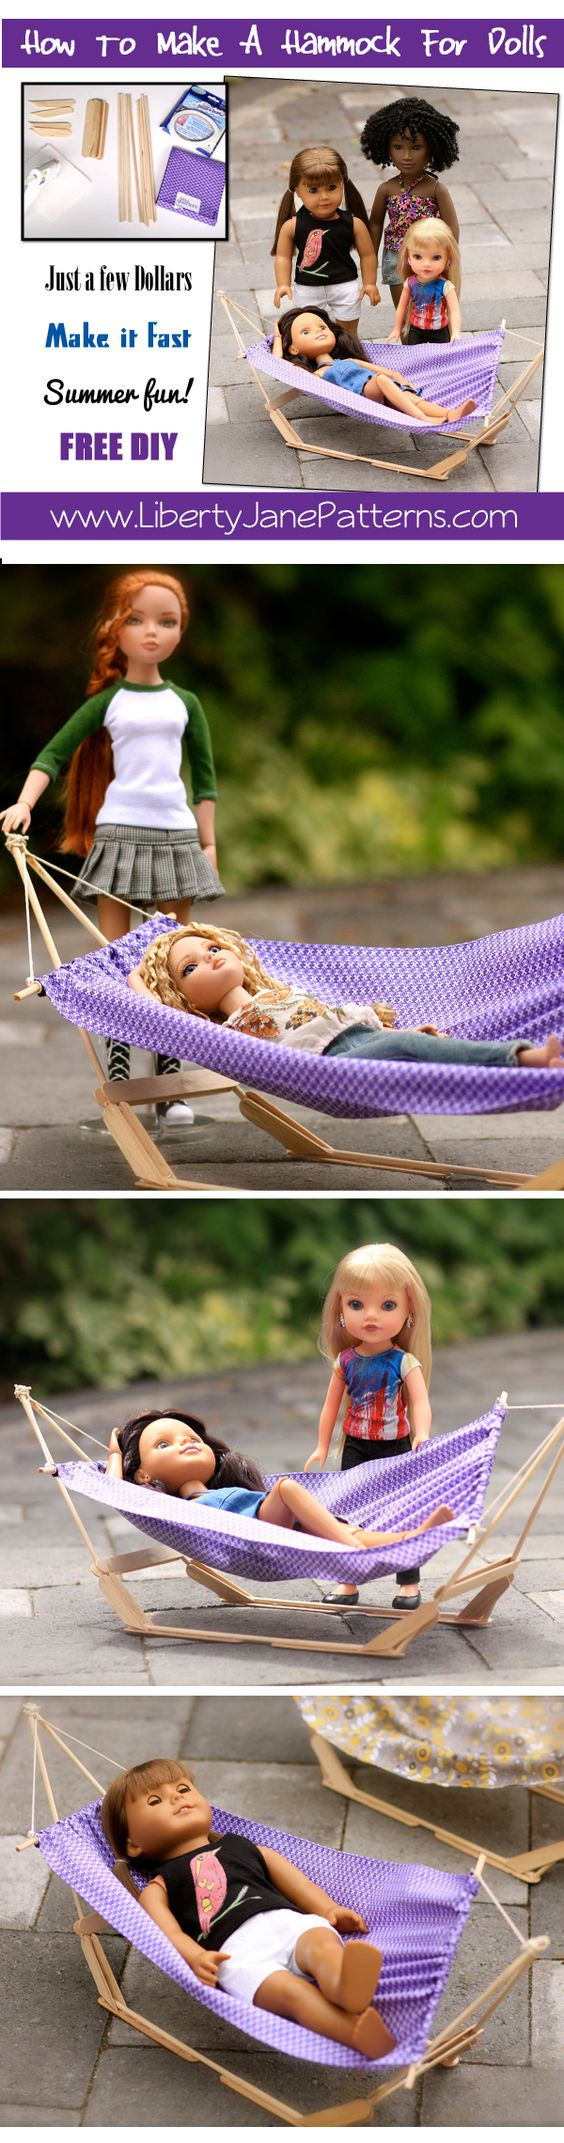 Free DIY How  to make a hammock for dolls. Video step by step tutorial. Fast, easy, cheap! #DIY #tutorial #doll #craft